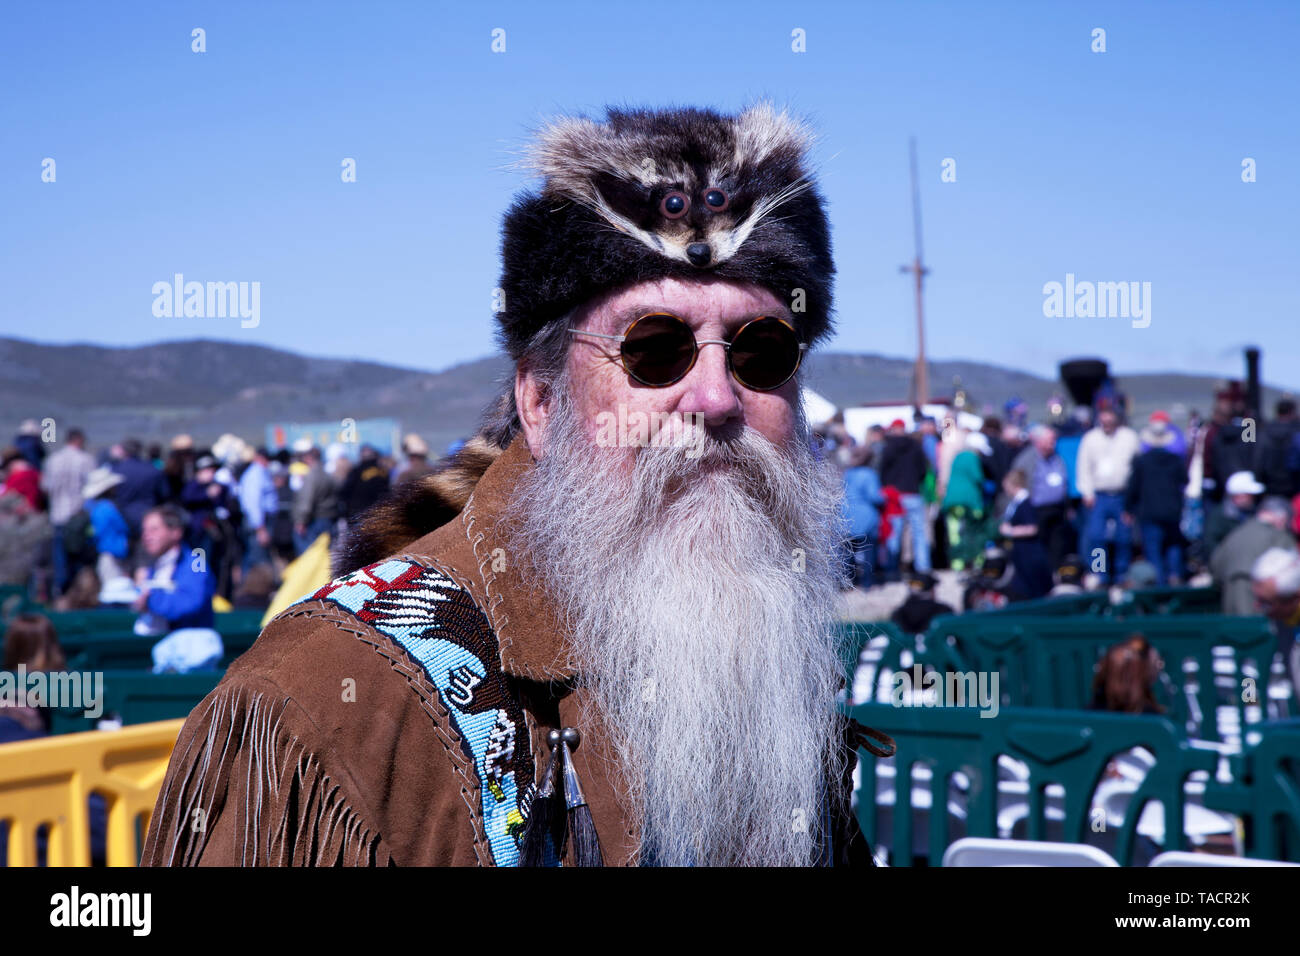 Paul the Mountain Man at the ceremony celebrating the 150th anniversary of the completion of the Transcontinental Railroad at the Golden Spike Nationa - Stock Image